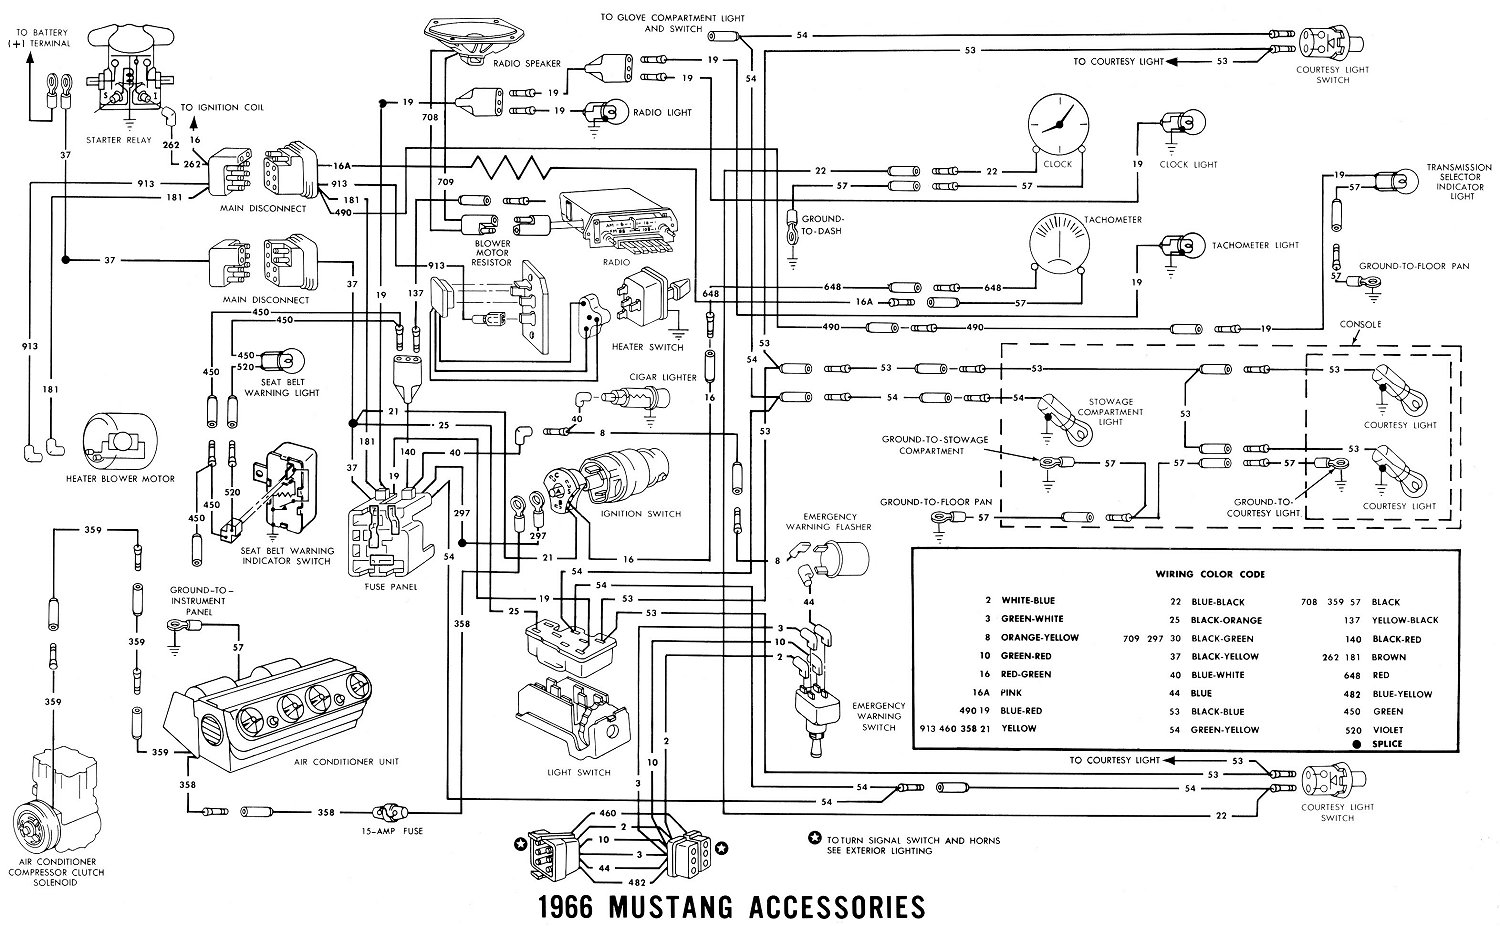 lelu s 66 mustang 1966 mustang wiring diagrams 1966 mustang accessories diagram